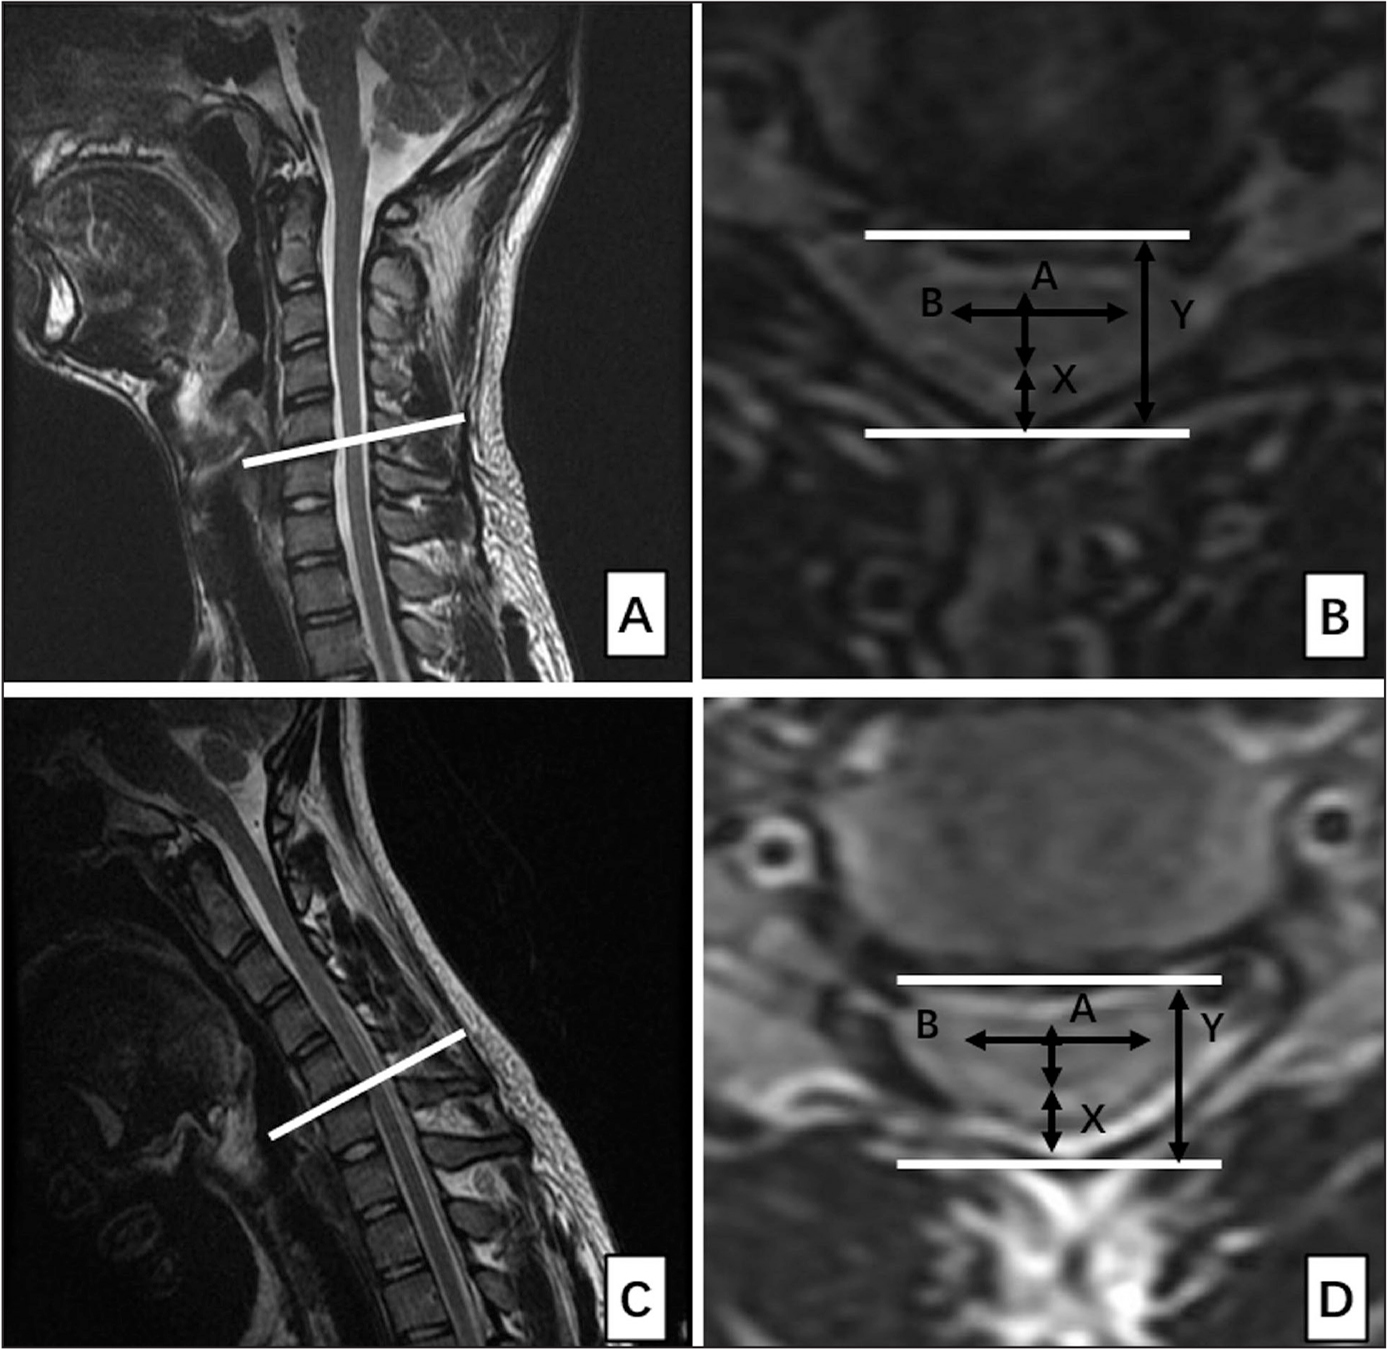 On cross-sectional magnetic resonance imaging, measurement of the cervical spine in neutral position (A, B) and flexion position (C, D) in patients with Hirayama disease. A, the anteroposterior diameter of the cervical cord; B, the transverse diameter of the cervical cord; X, the distance between the posterior edge of the spinal cord and the posterior wall of the spinal canal; Y, the anteroposterior diameter of the spinal canal.